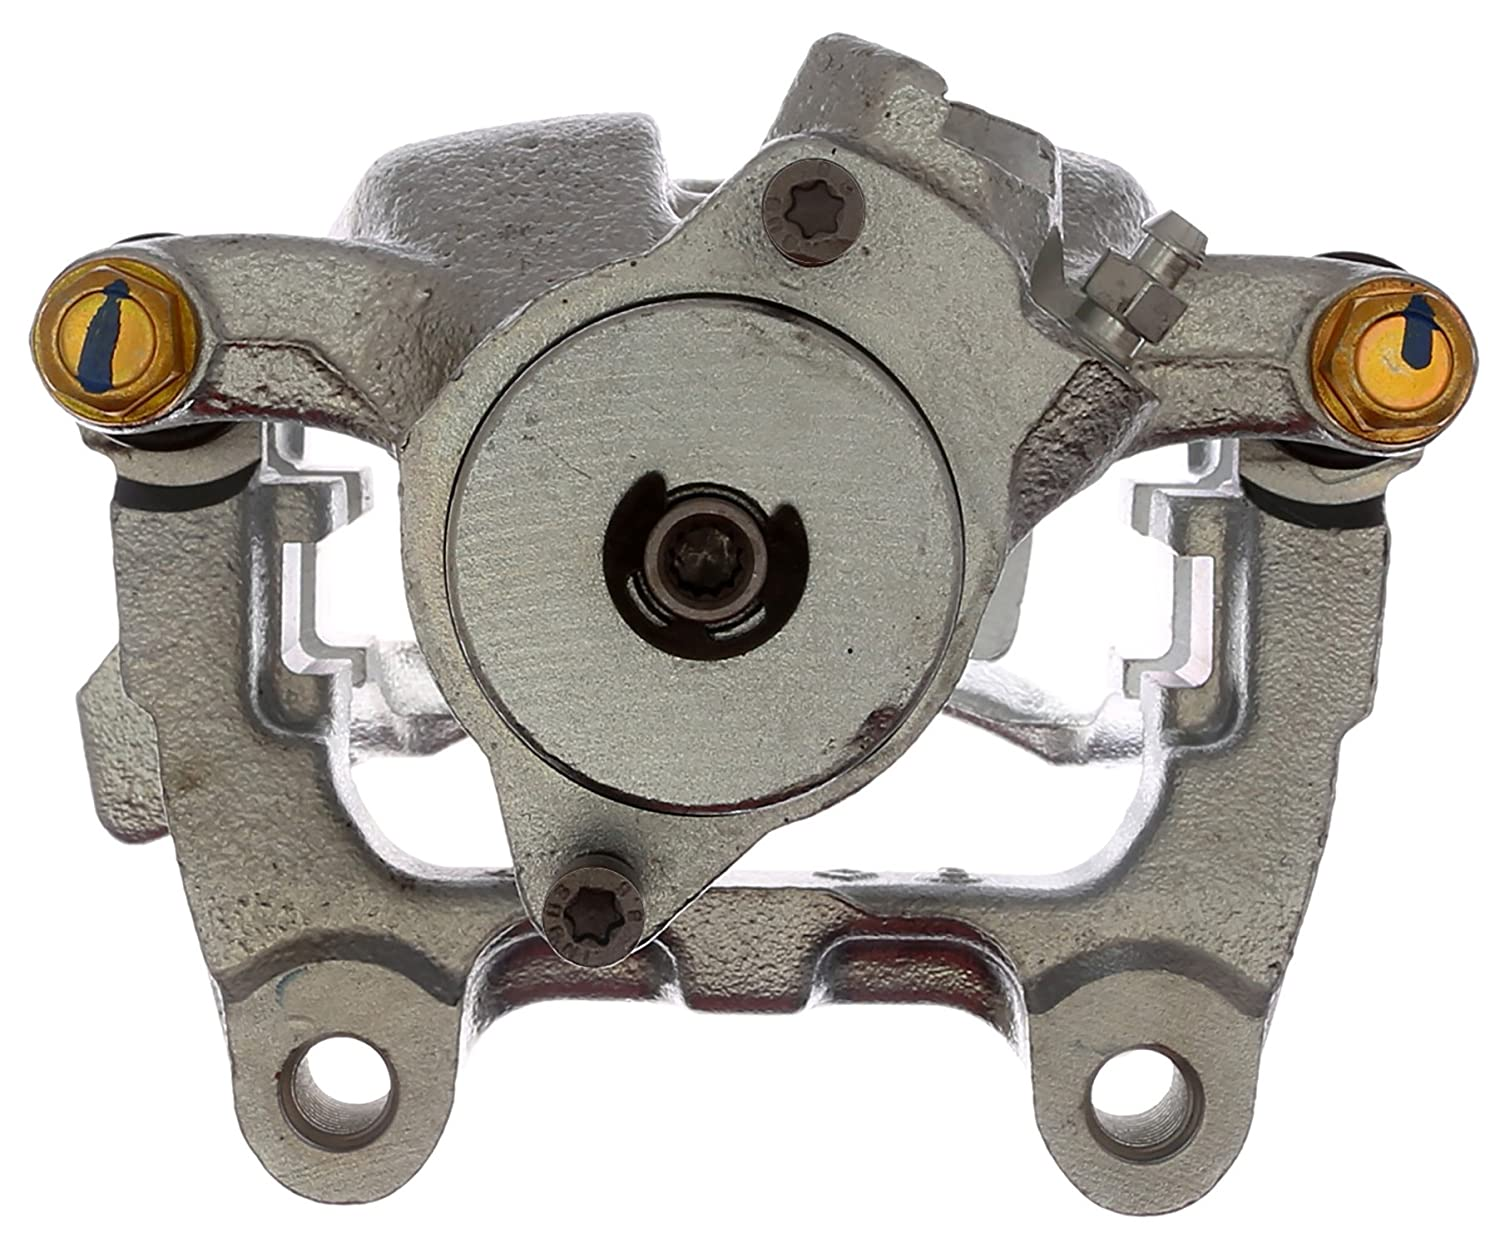 ACDelco 18FR12702C Professional Rear Passenger Side Disc Brake Caliper Assembly without Pads (Friction Ready Coated), Remanufactured